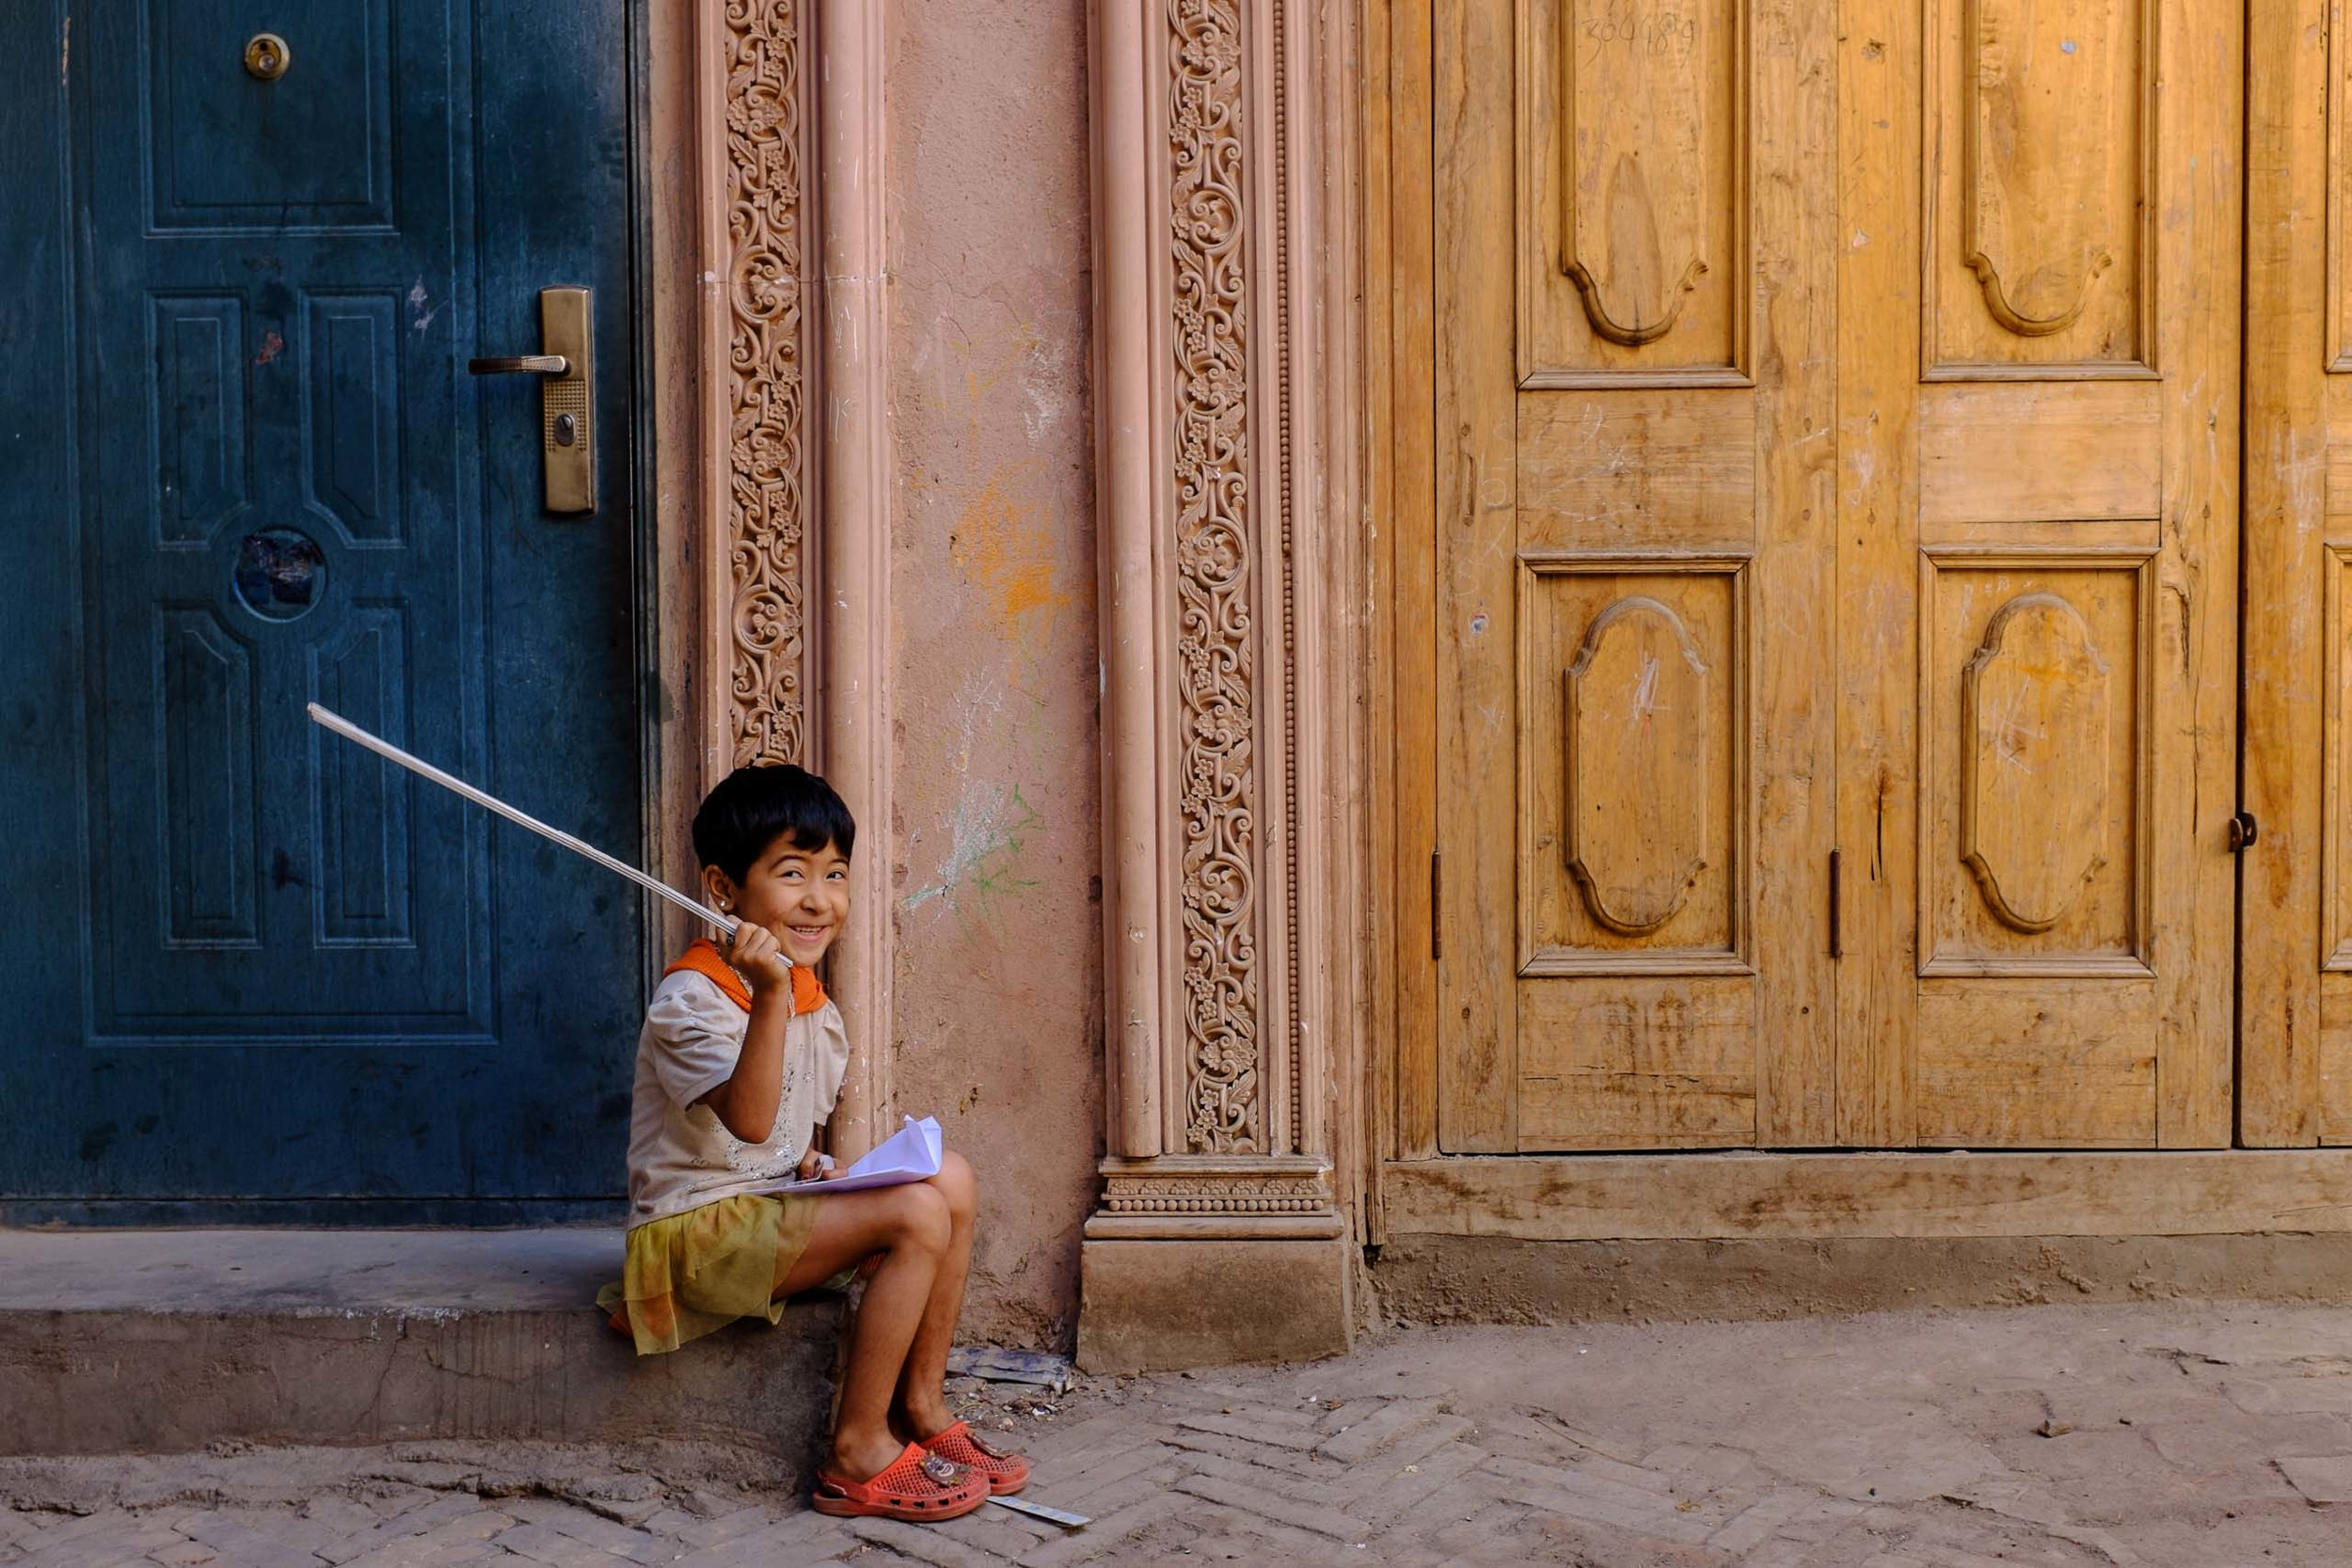 A young girl smiling on a stoop in one of the wandering alleyways of Kashgar's old town